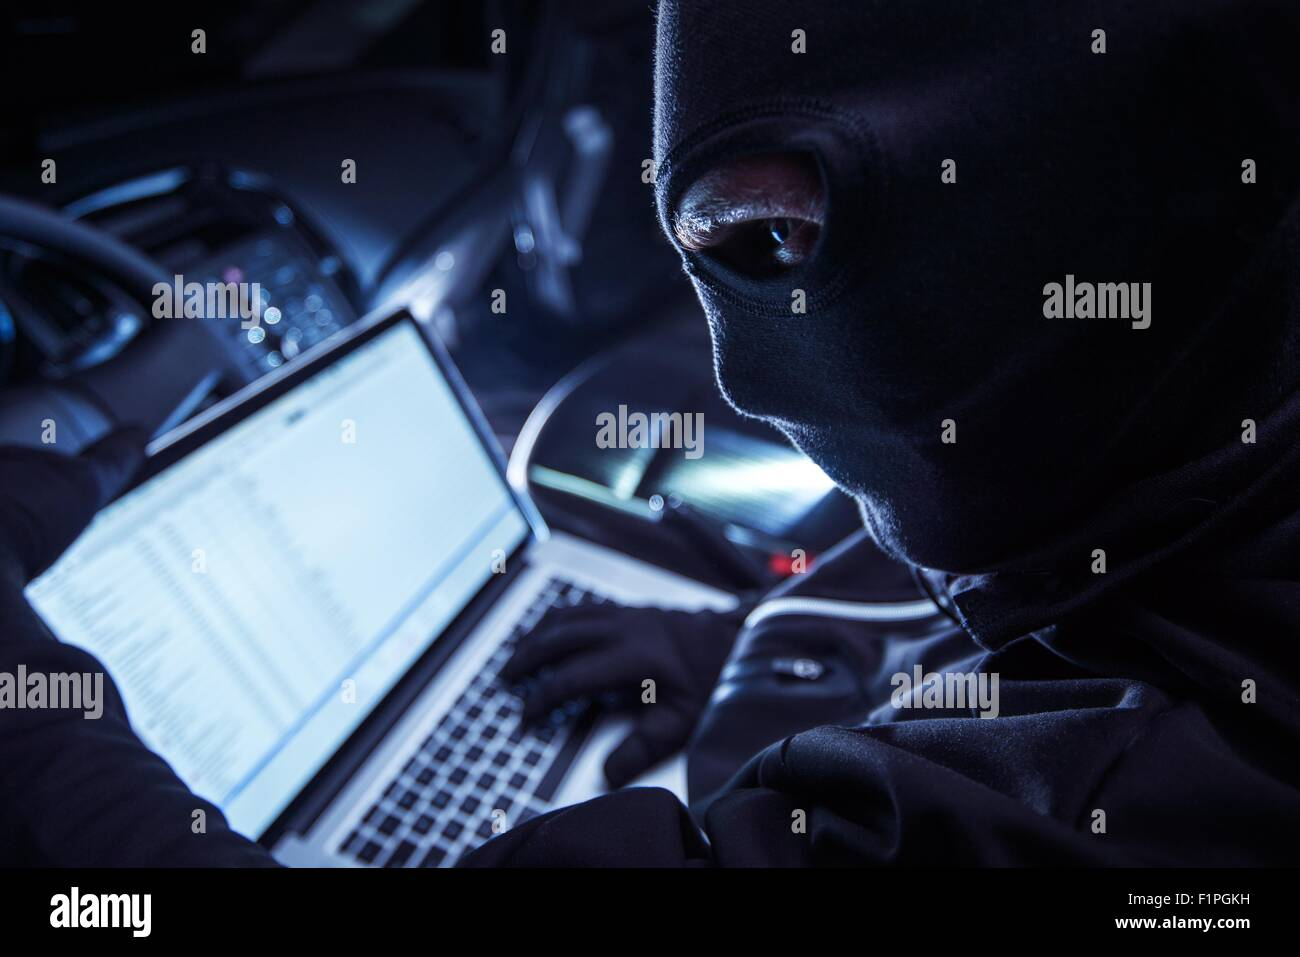 Hacker Inside the Car. Car Robber Hacking Vehicle From Inside Using His Laptop. Hacking On board Vehicle Computer. - Stock Image